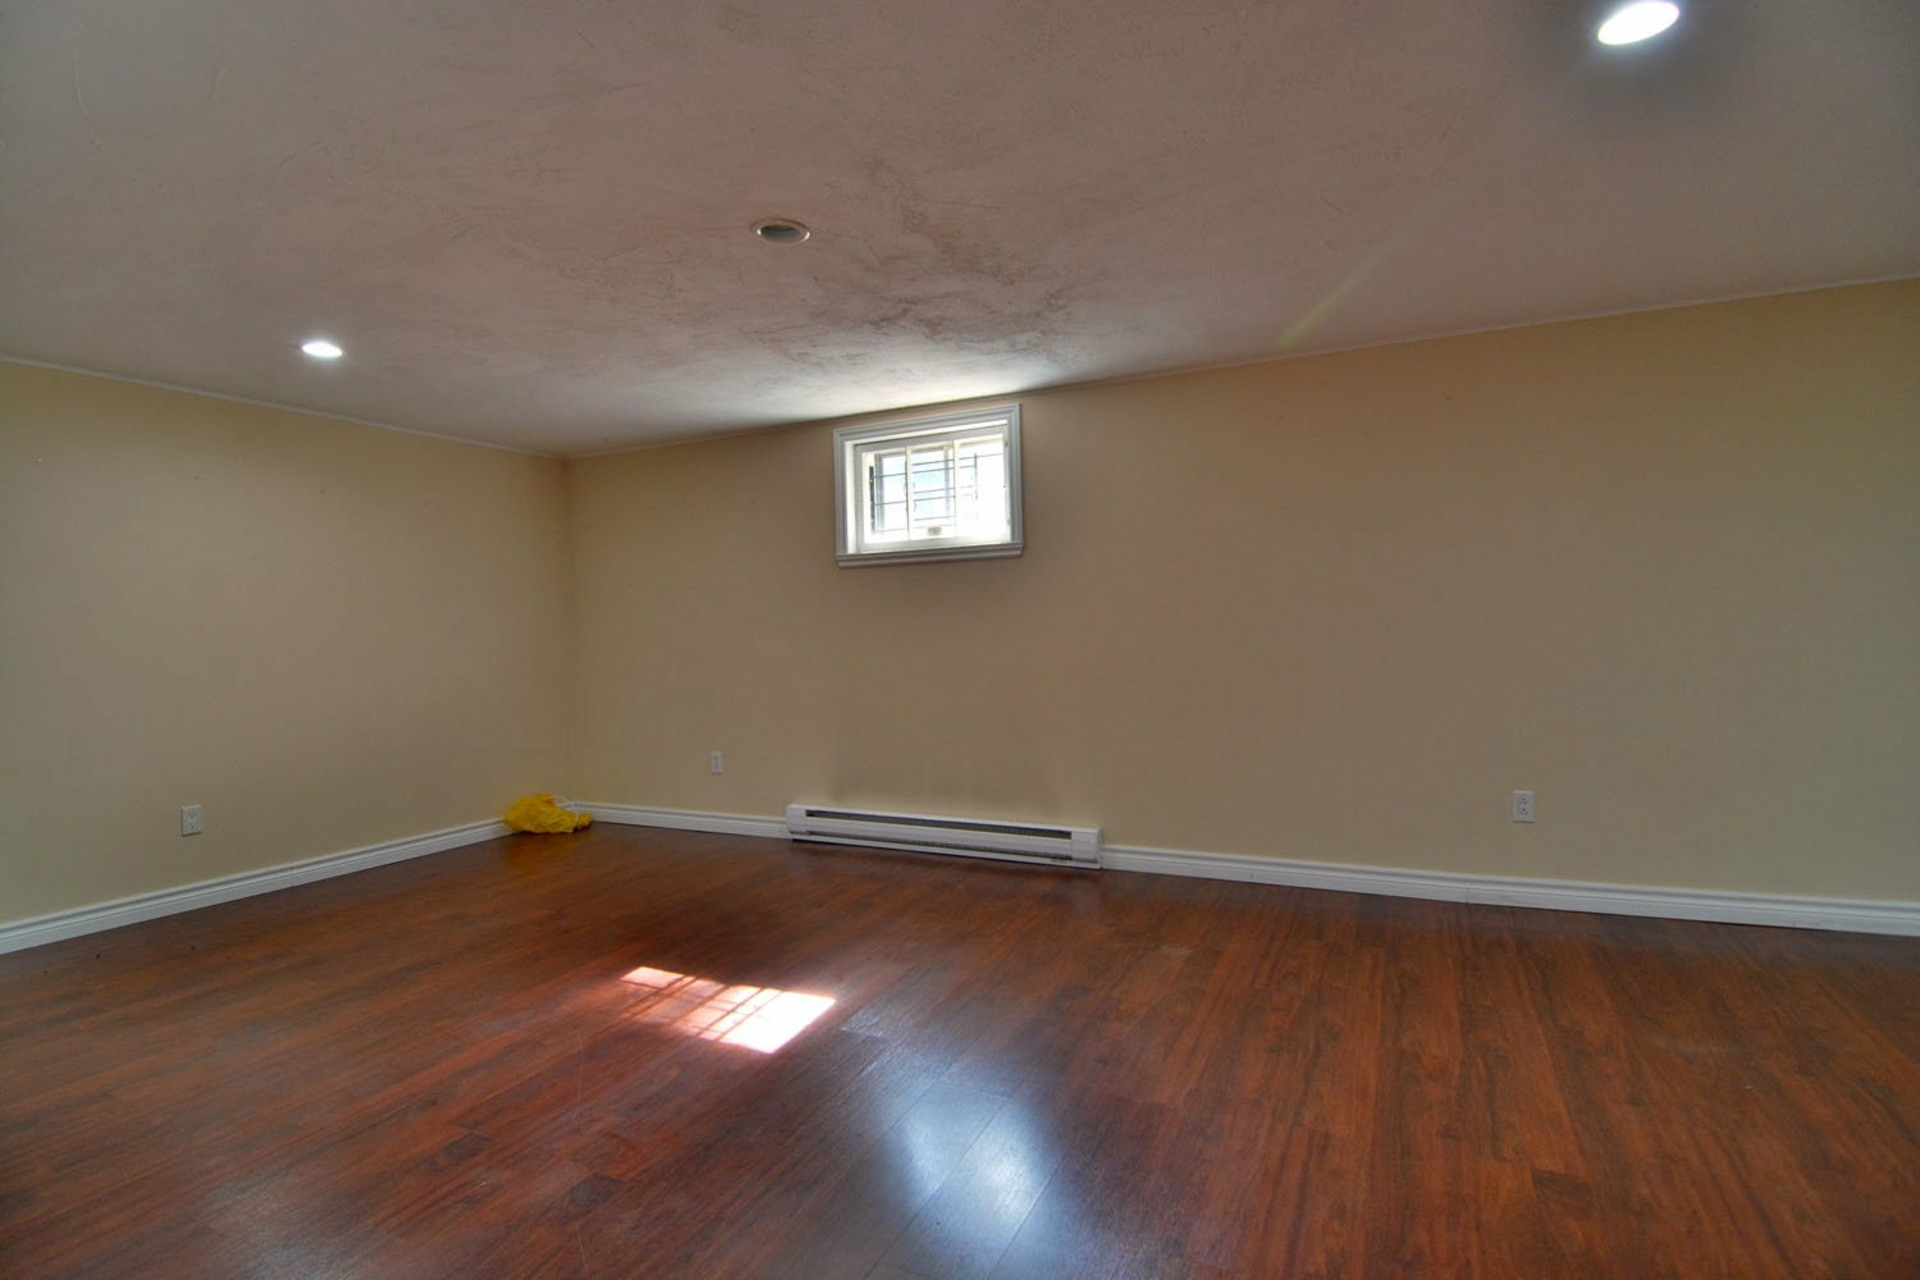 image 15 - House For rent Beaconsfield - 7 rooms